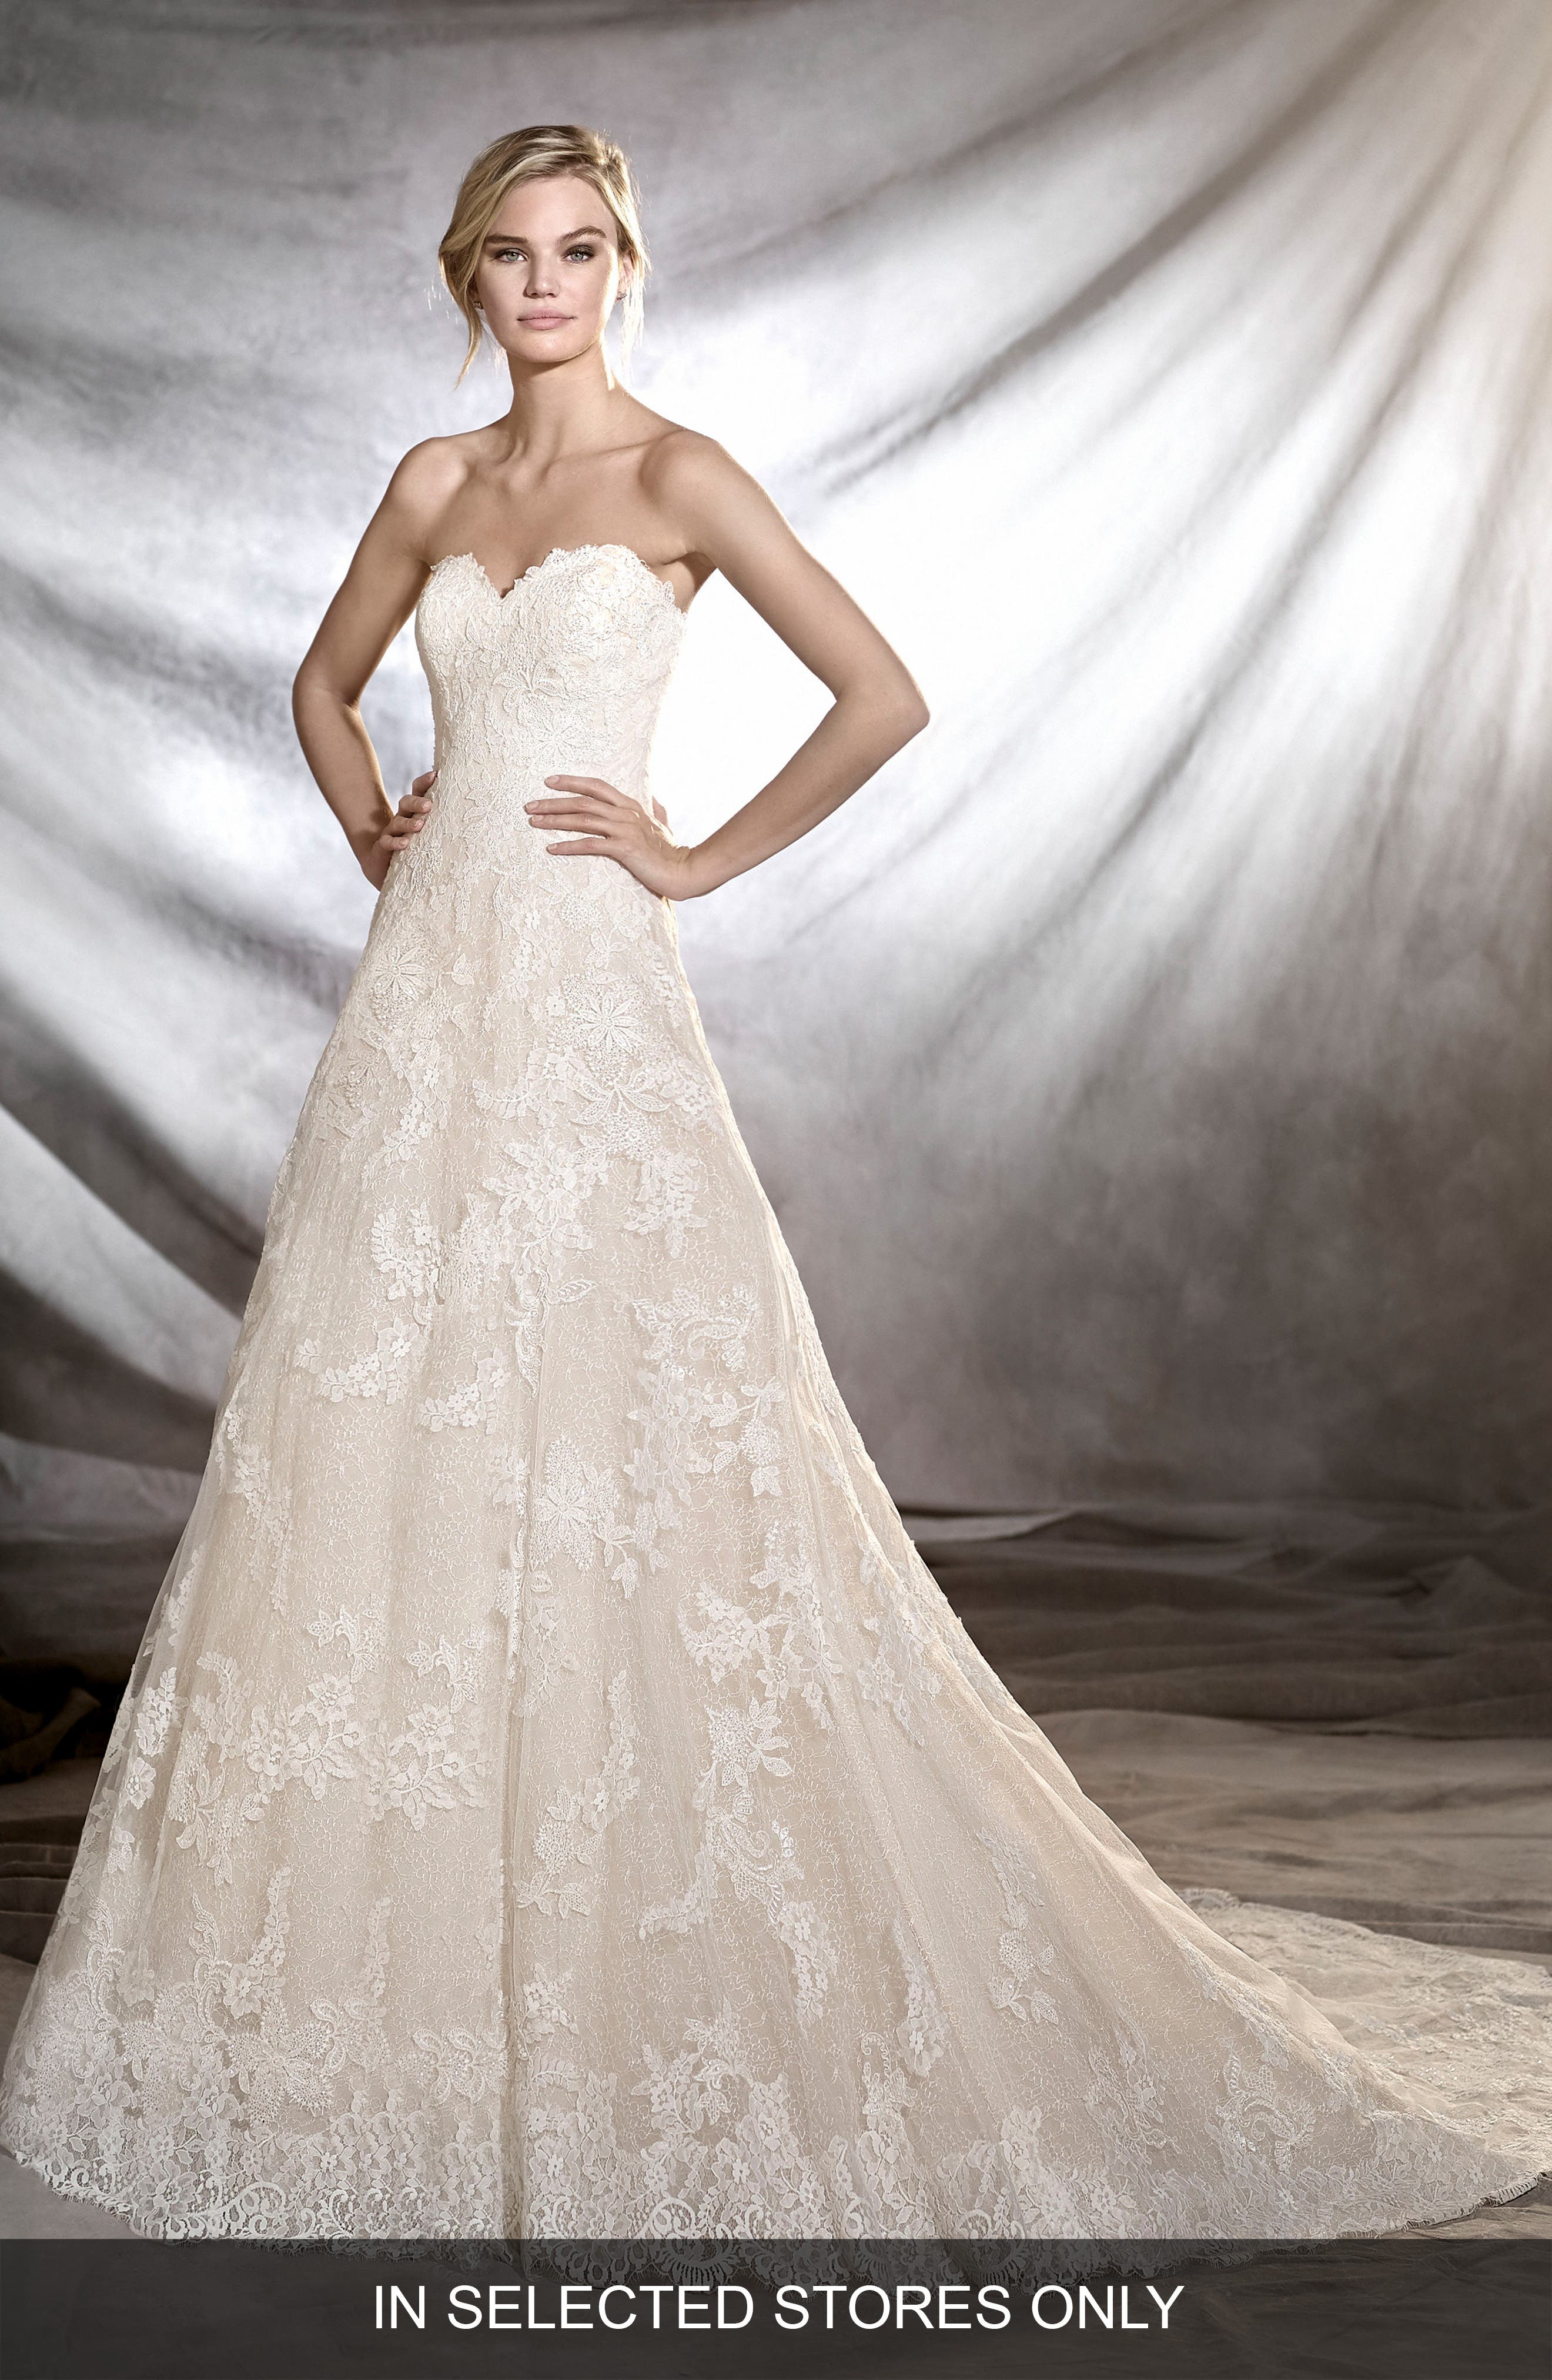 Onia Strapless Lace Gown,                             Main thumbnail 1, color,                             Off White